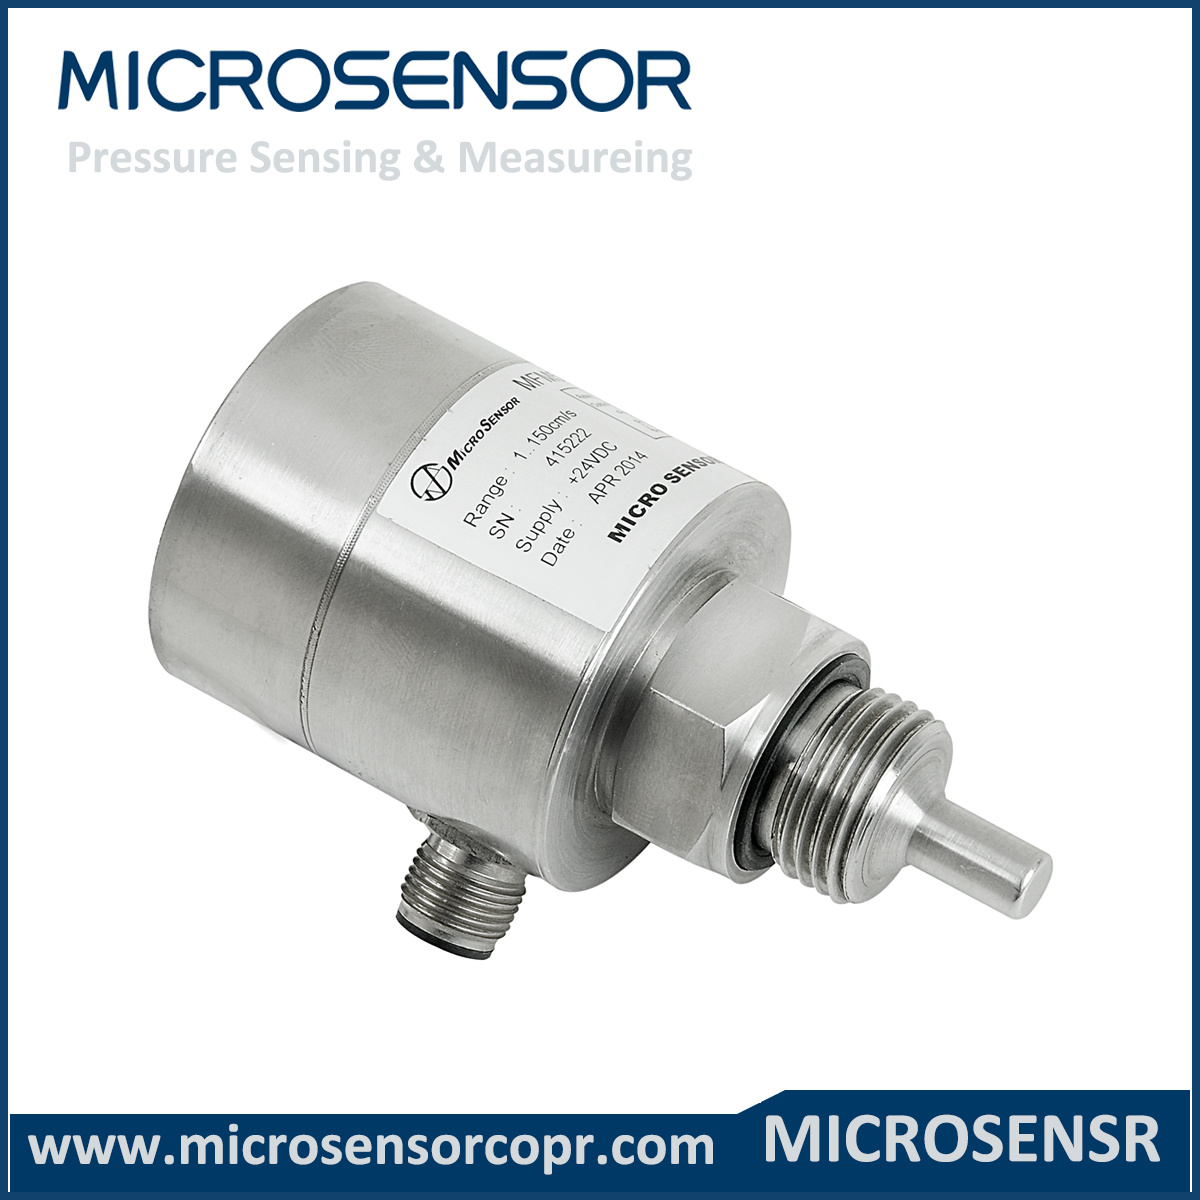 Flow Switch with LED Display for Iron Mfm500